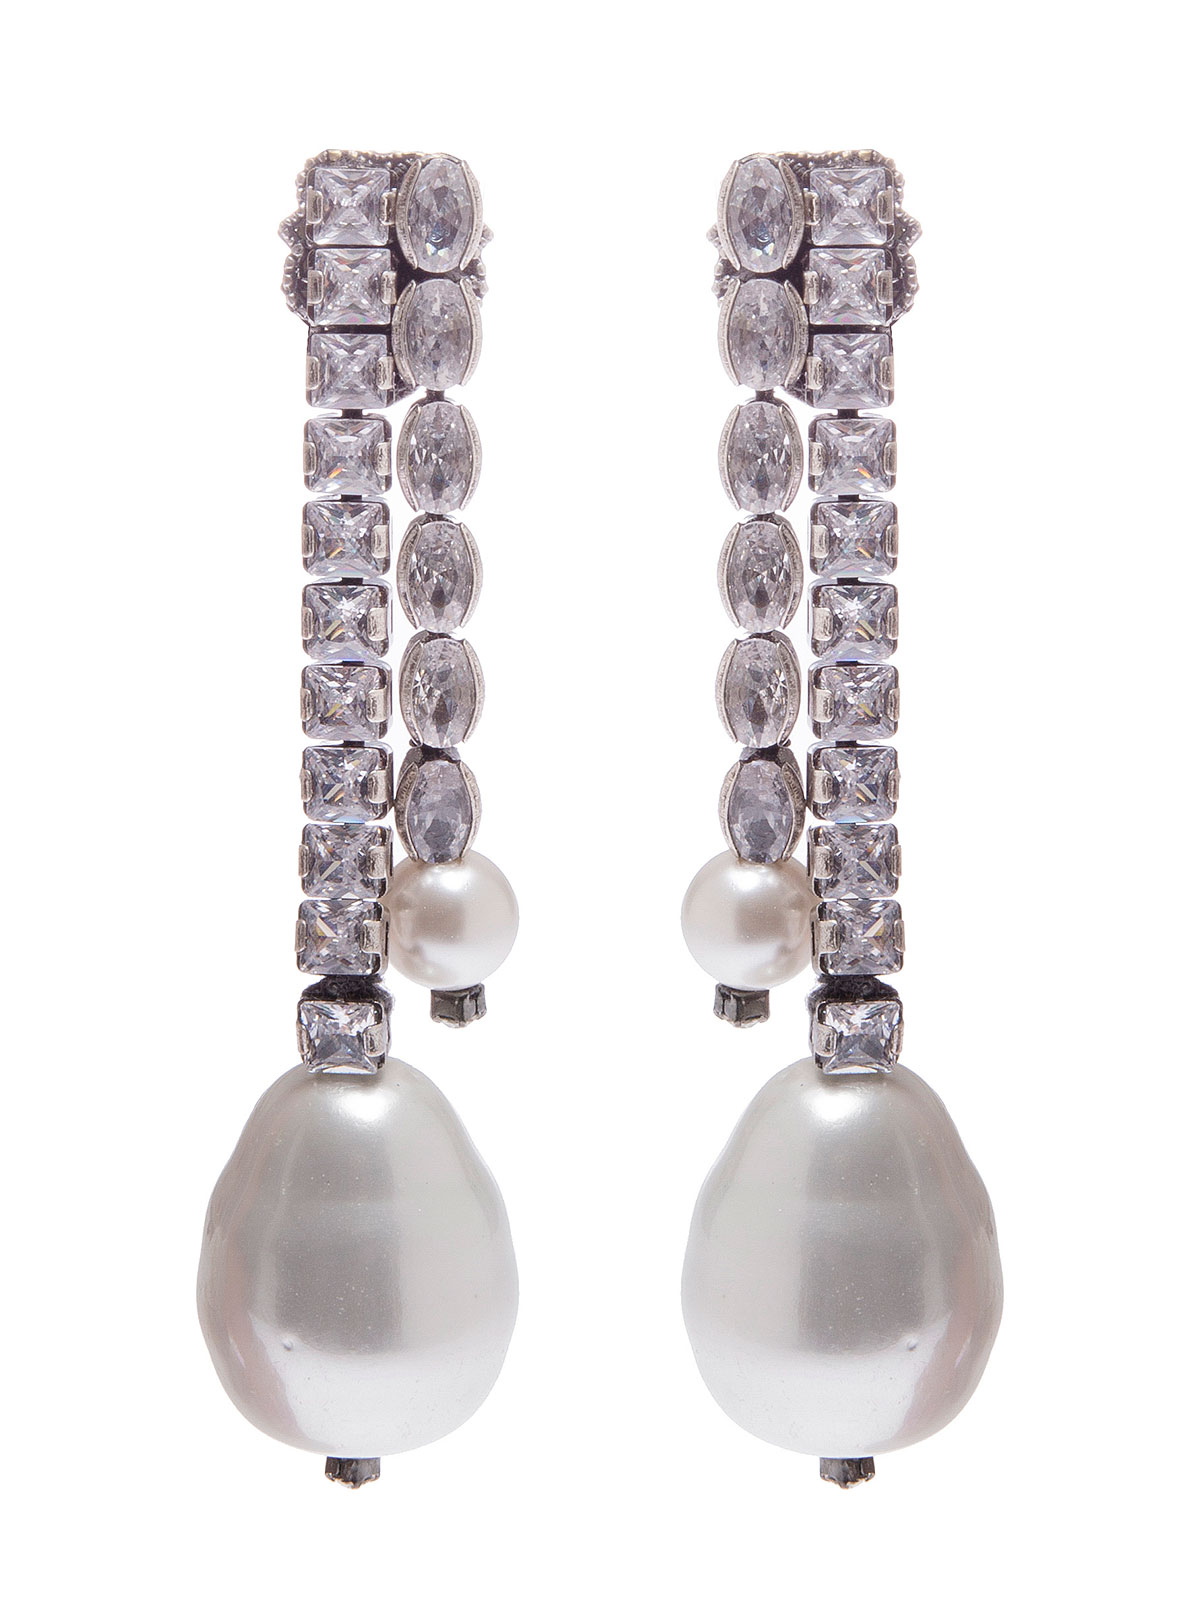 Crystal row earrings ending with glass pearls